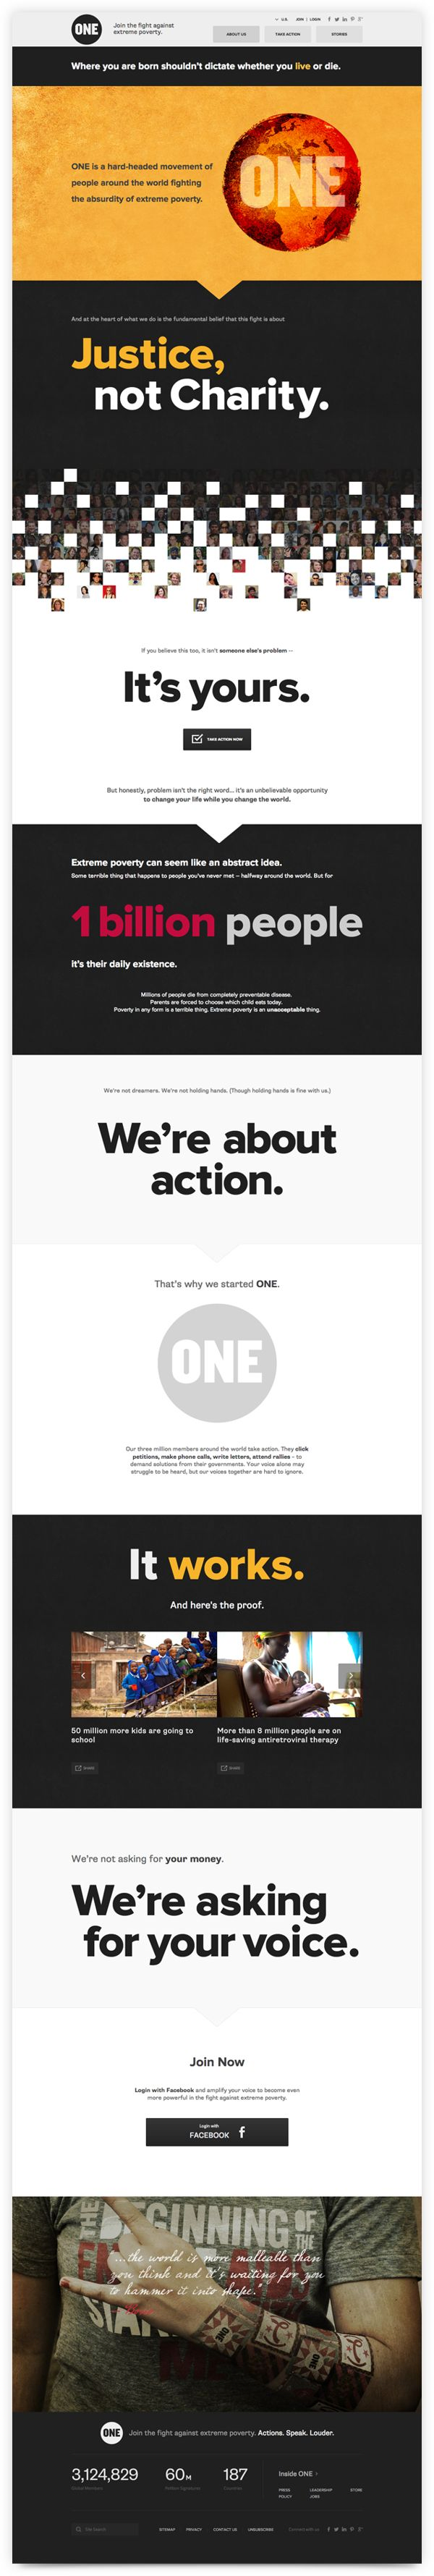 The new ONE.org redesigned with less text, and more visuals.